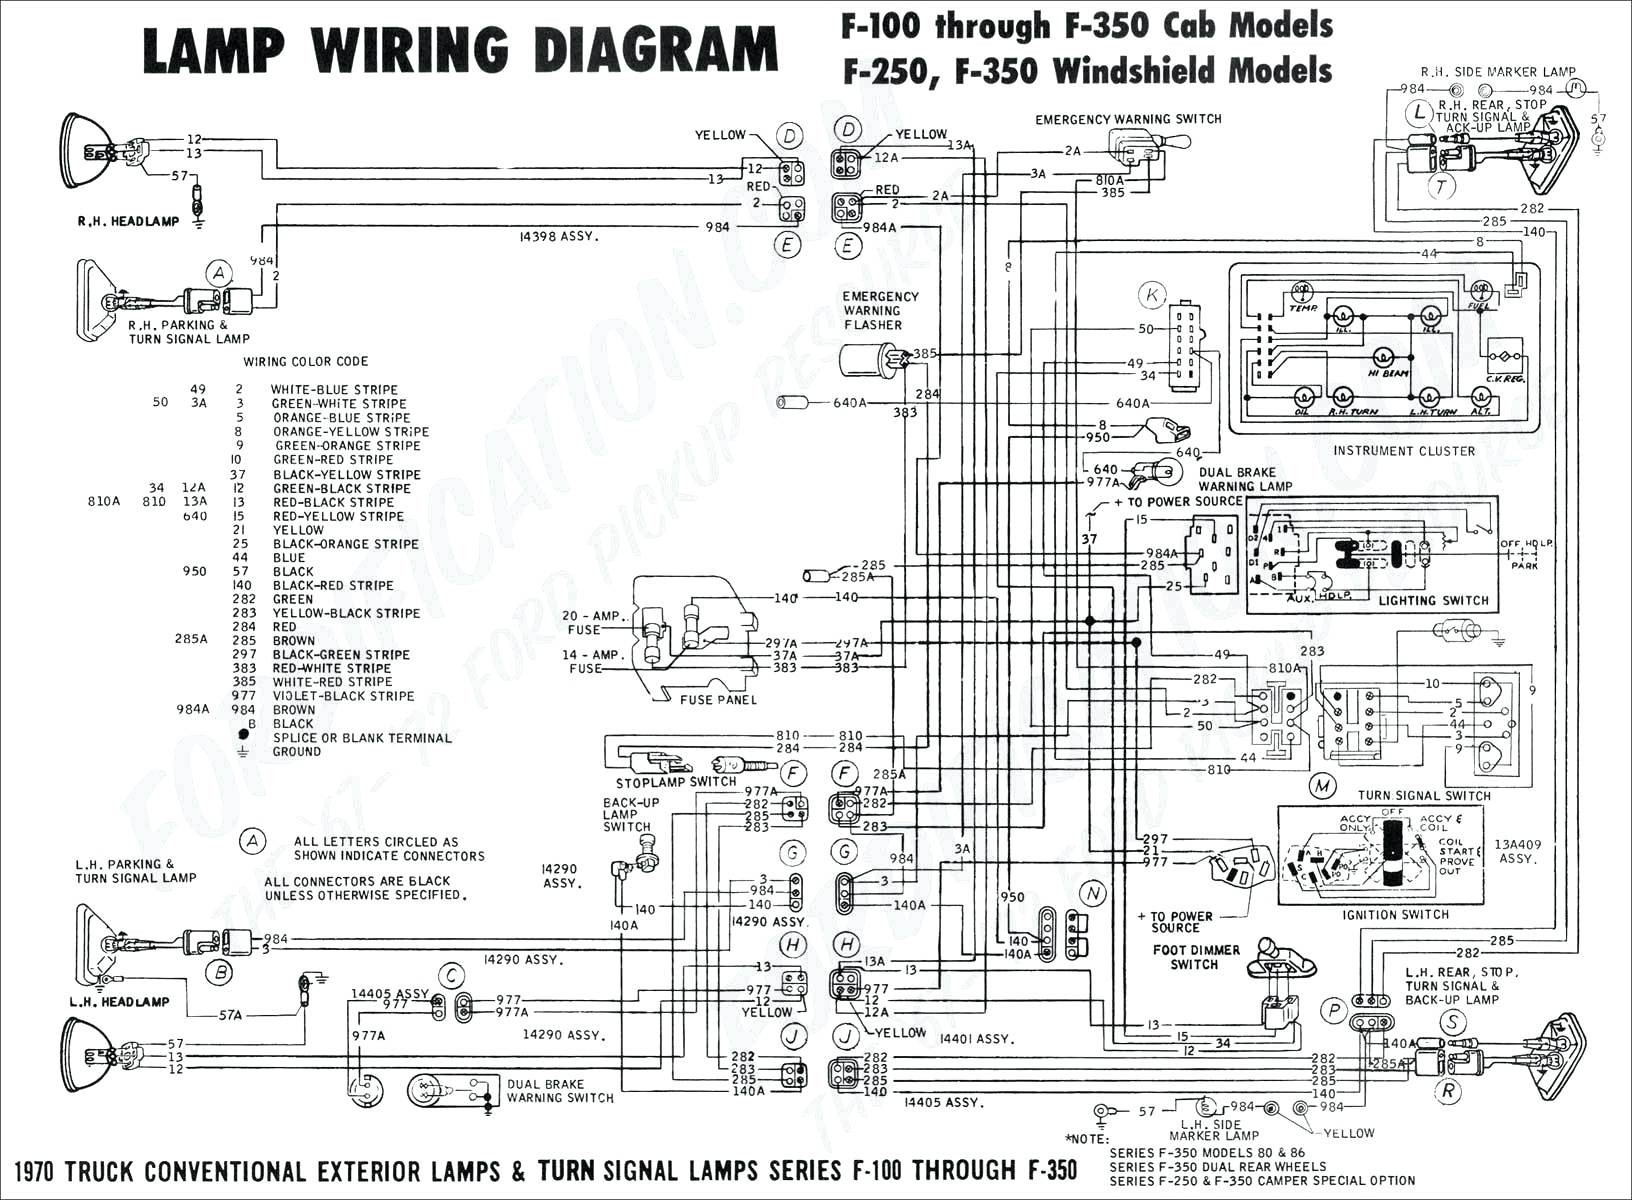 2001 Ford F350 Wiring Schematic - Wiring Diagrams Thumbs - F350 Wiring Diagram Trailer